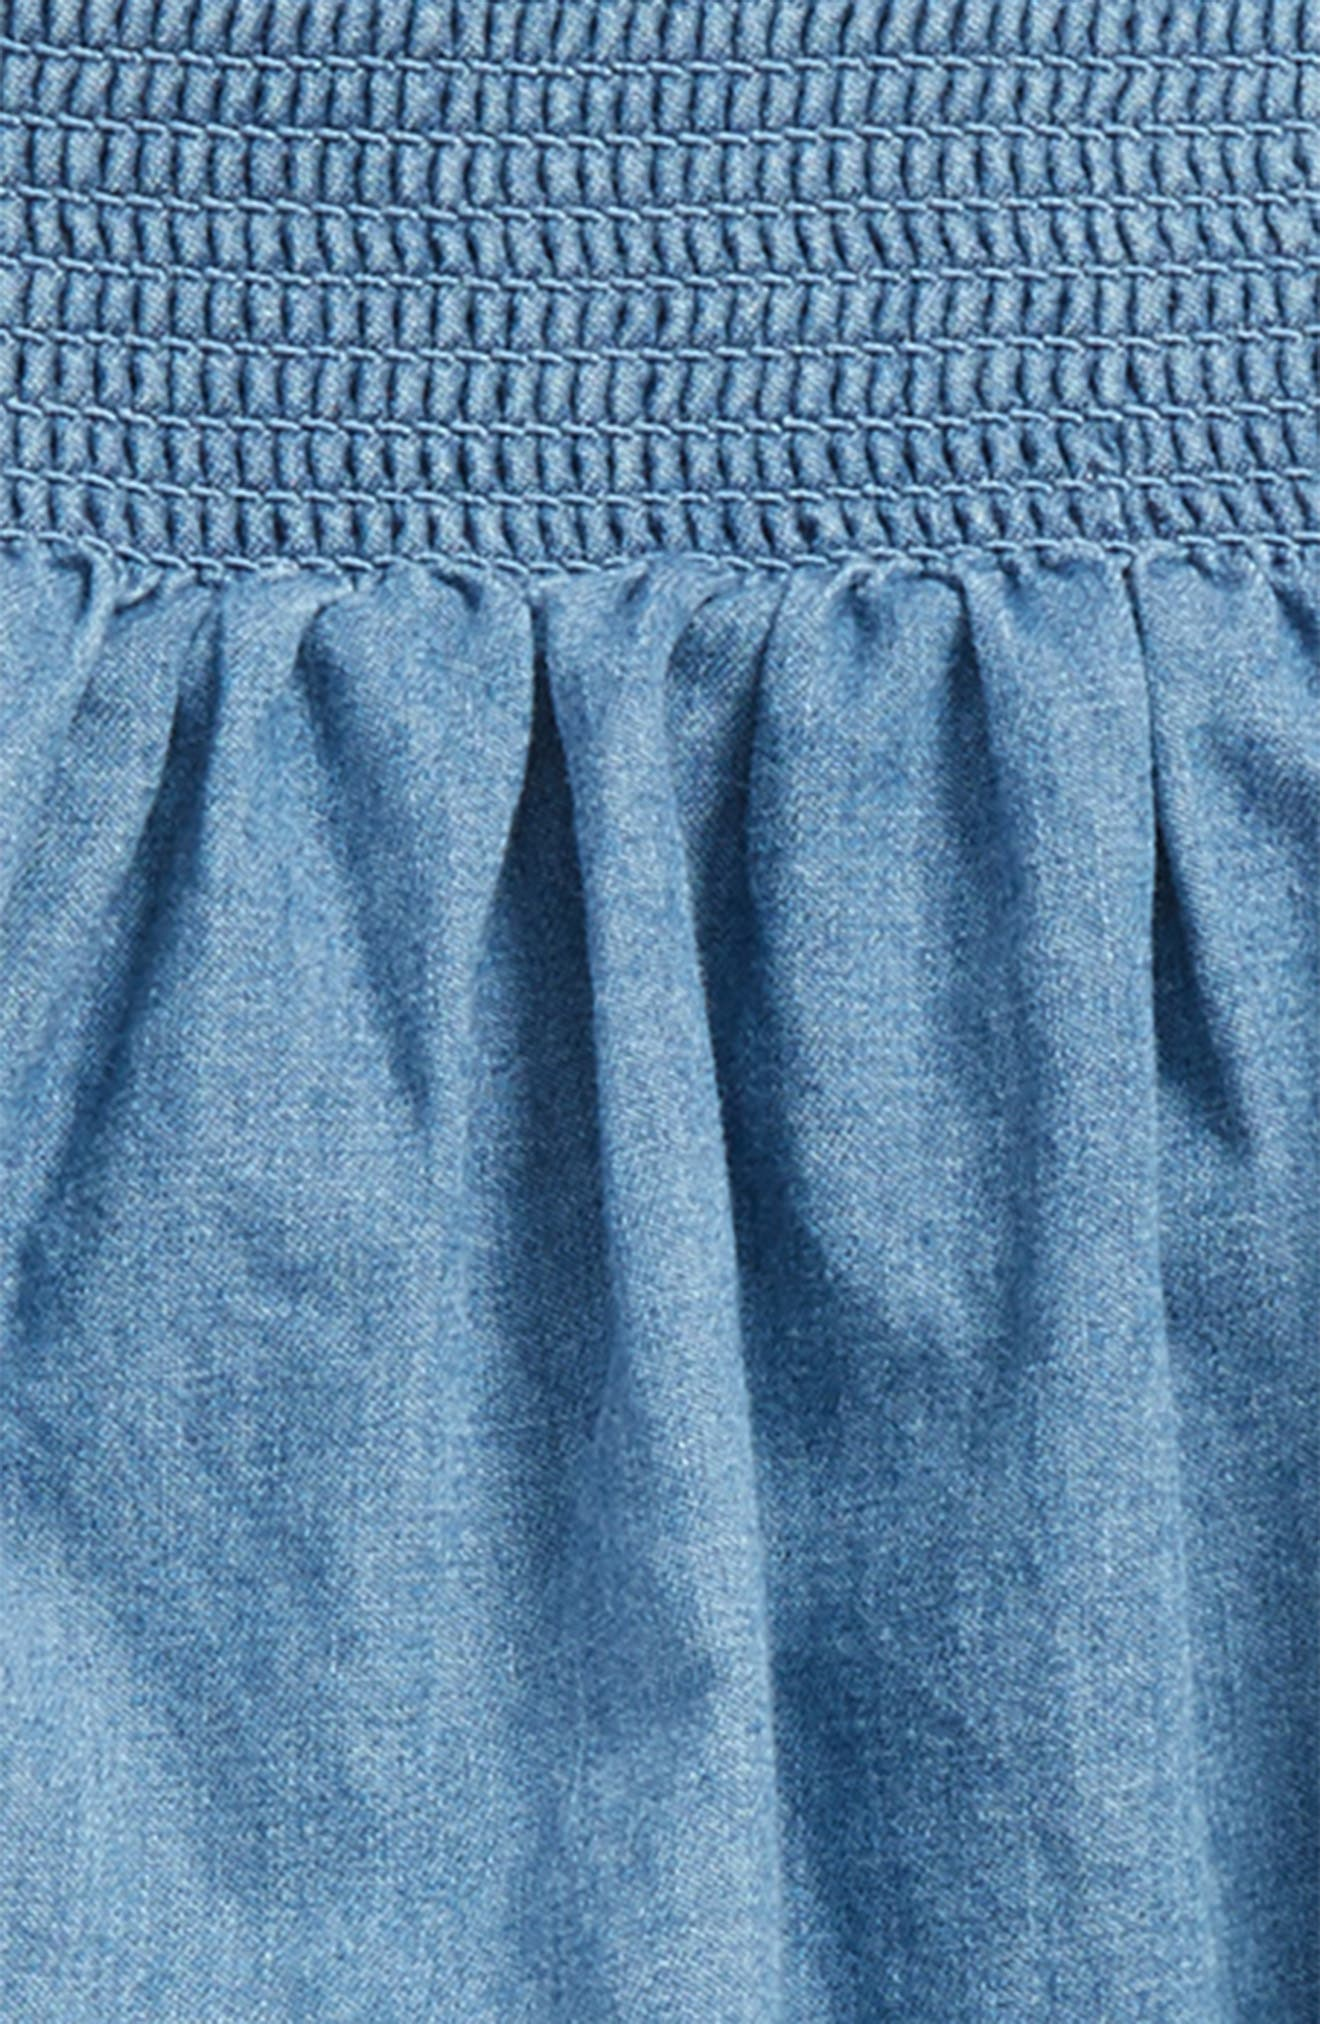 Ruffle Denim Skirt,                             Alternate thumbnail 2, color,                             409